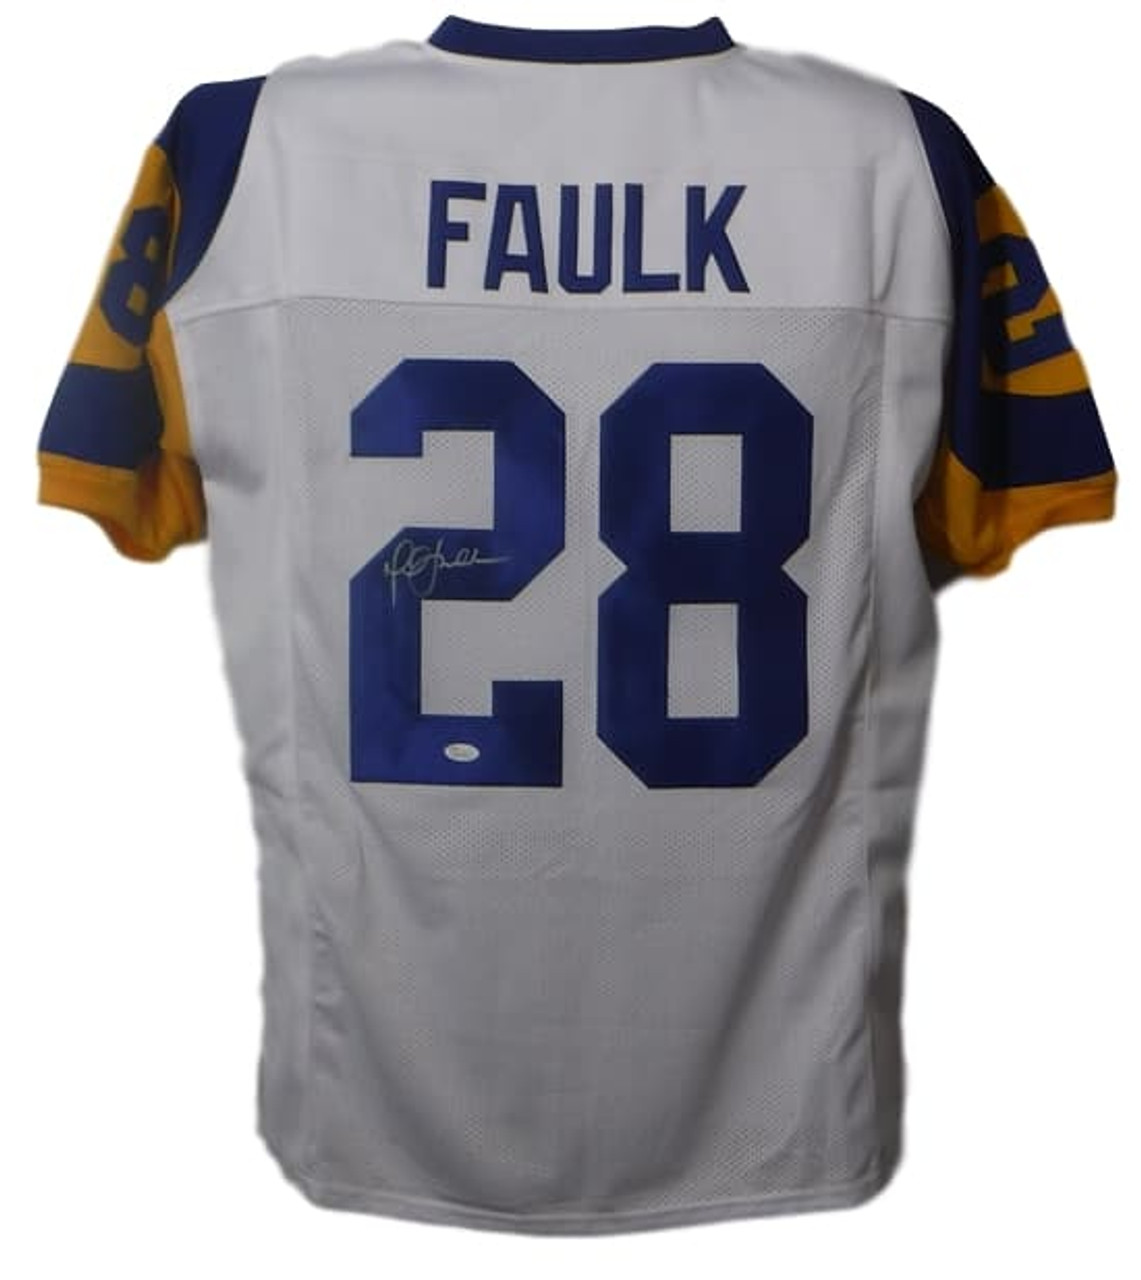 best website f75e9 26846 Marshall Faulk Autographed Los Angeles Rams Custom Size XL White Jersey  (Name Only) JSA